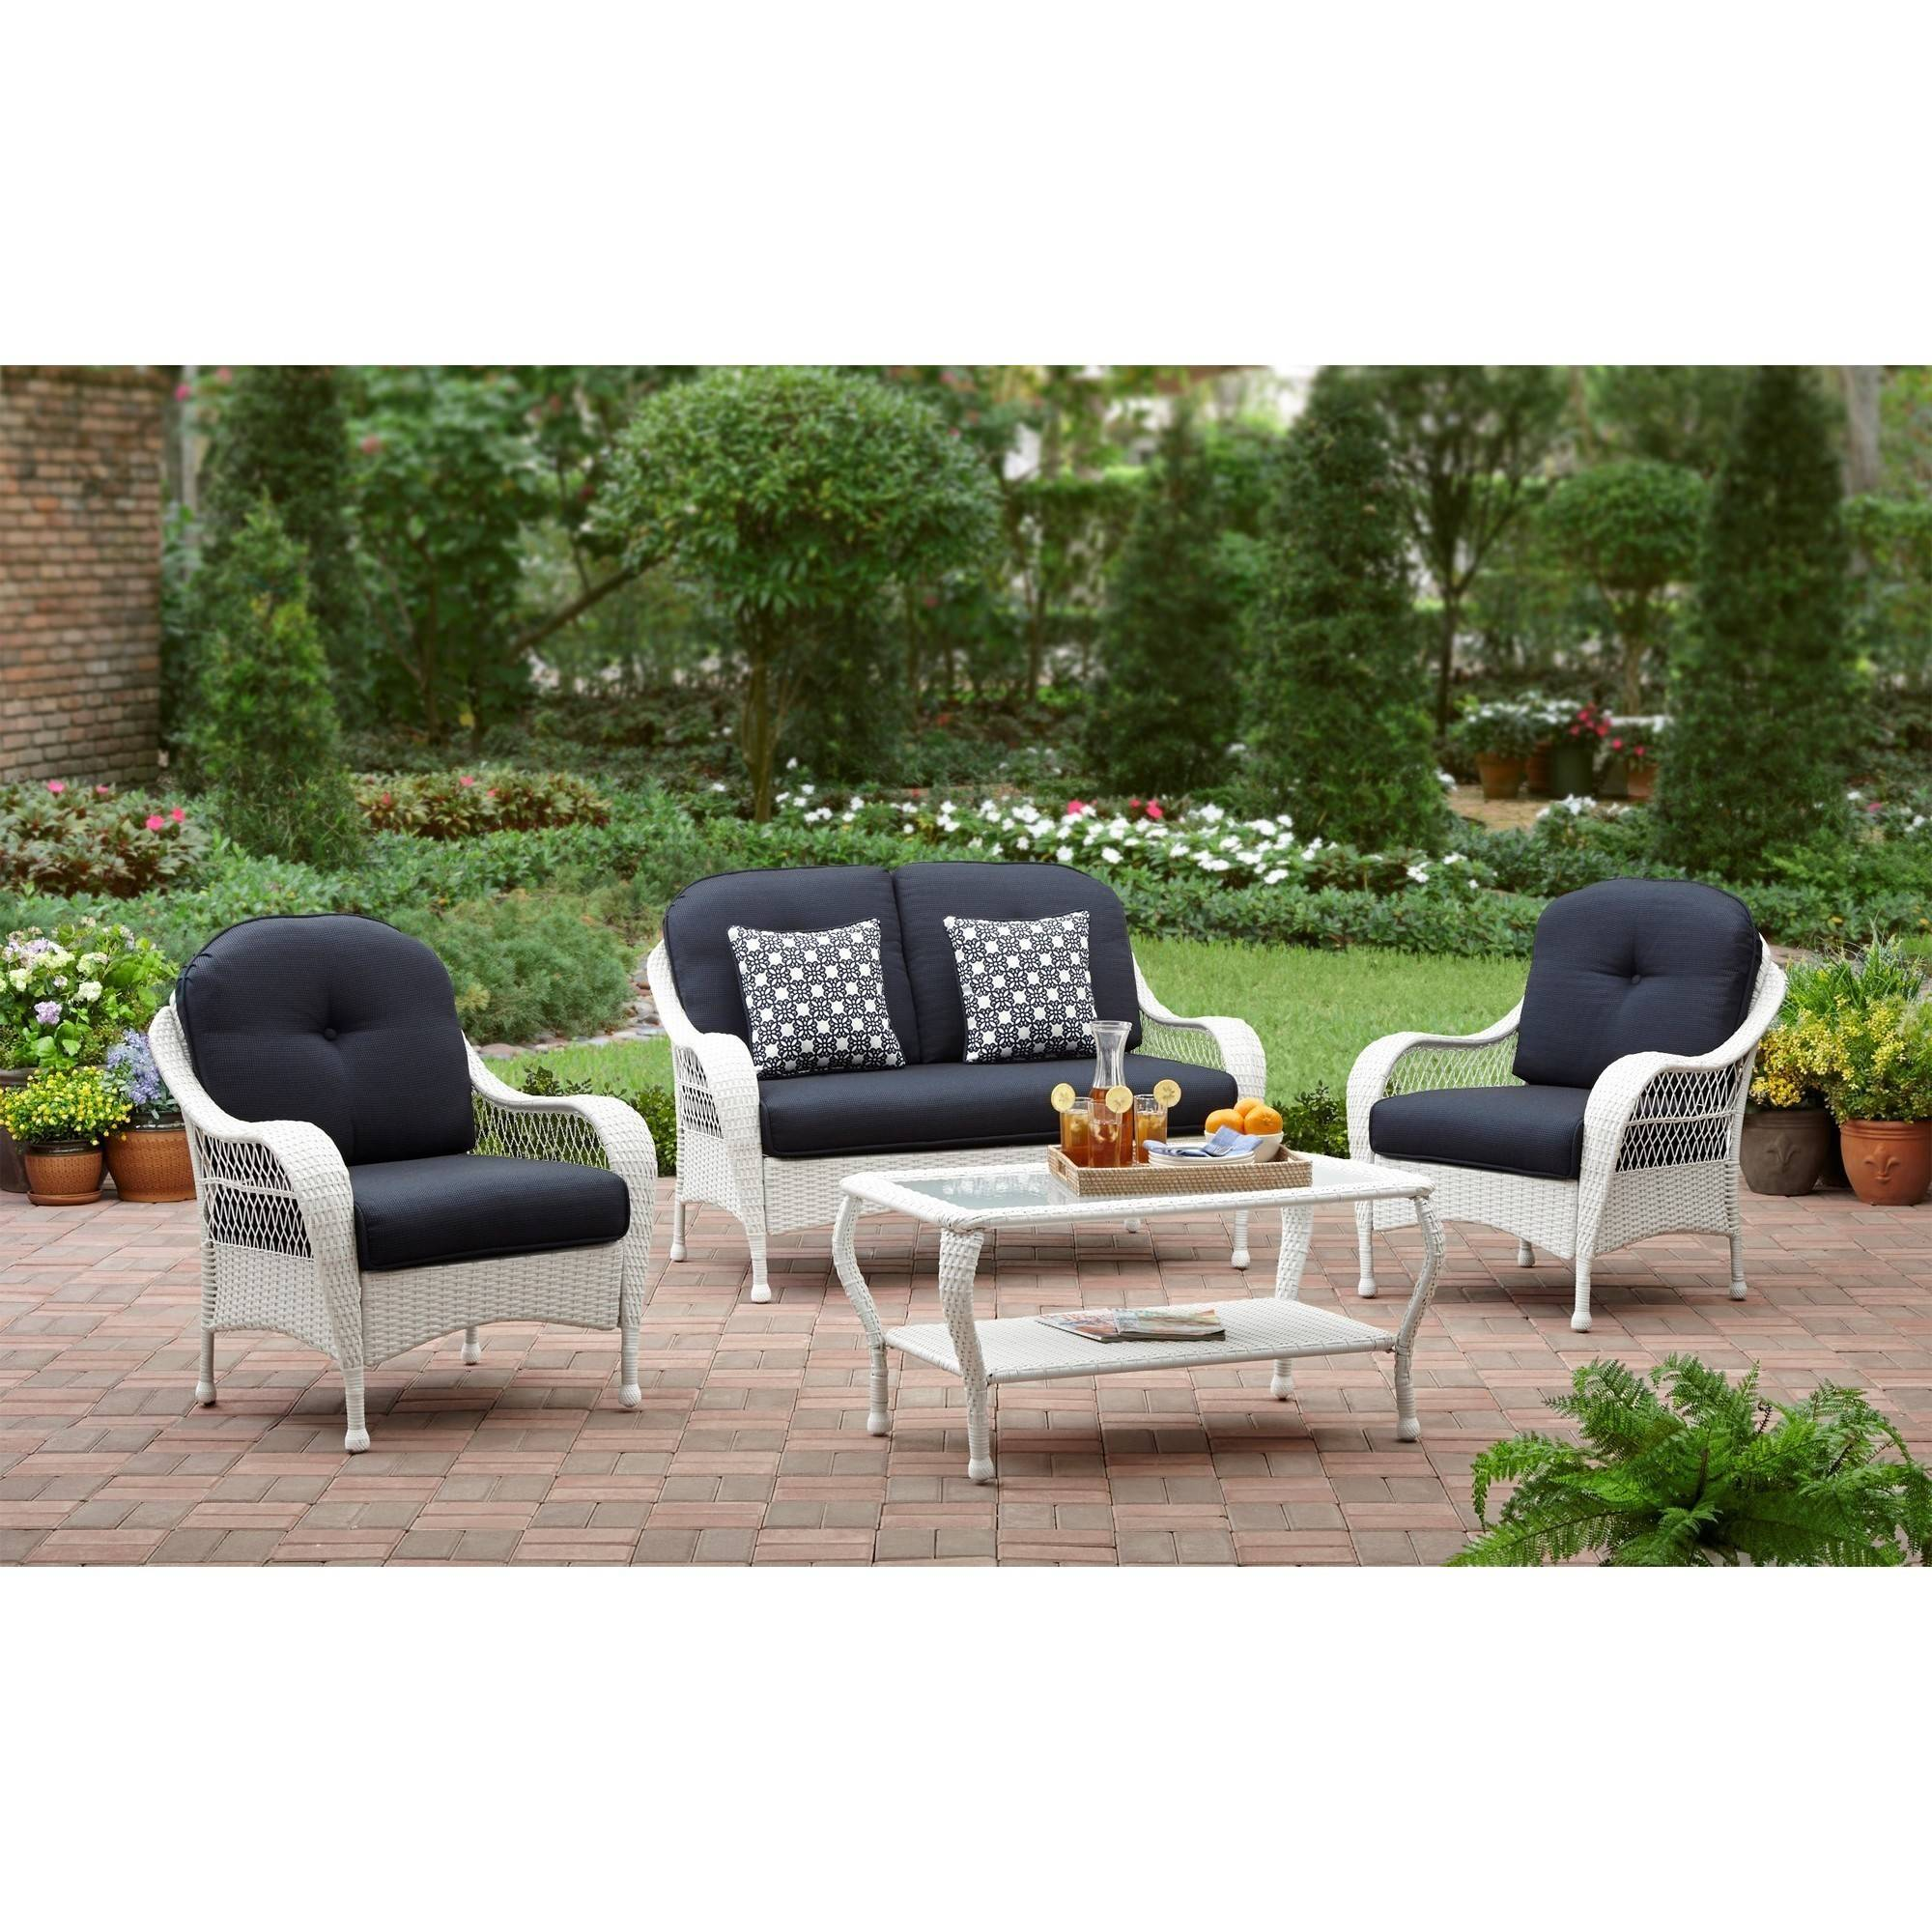 better homes and gardens azalea ridge 4 piece patio conversation set white seats 4 walmartcom